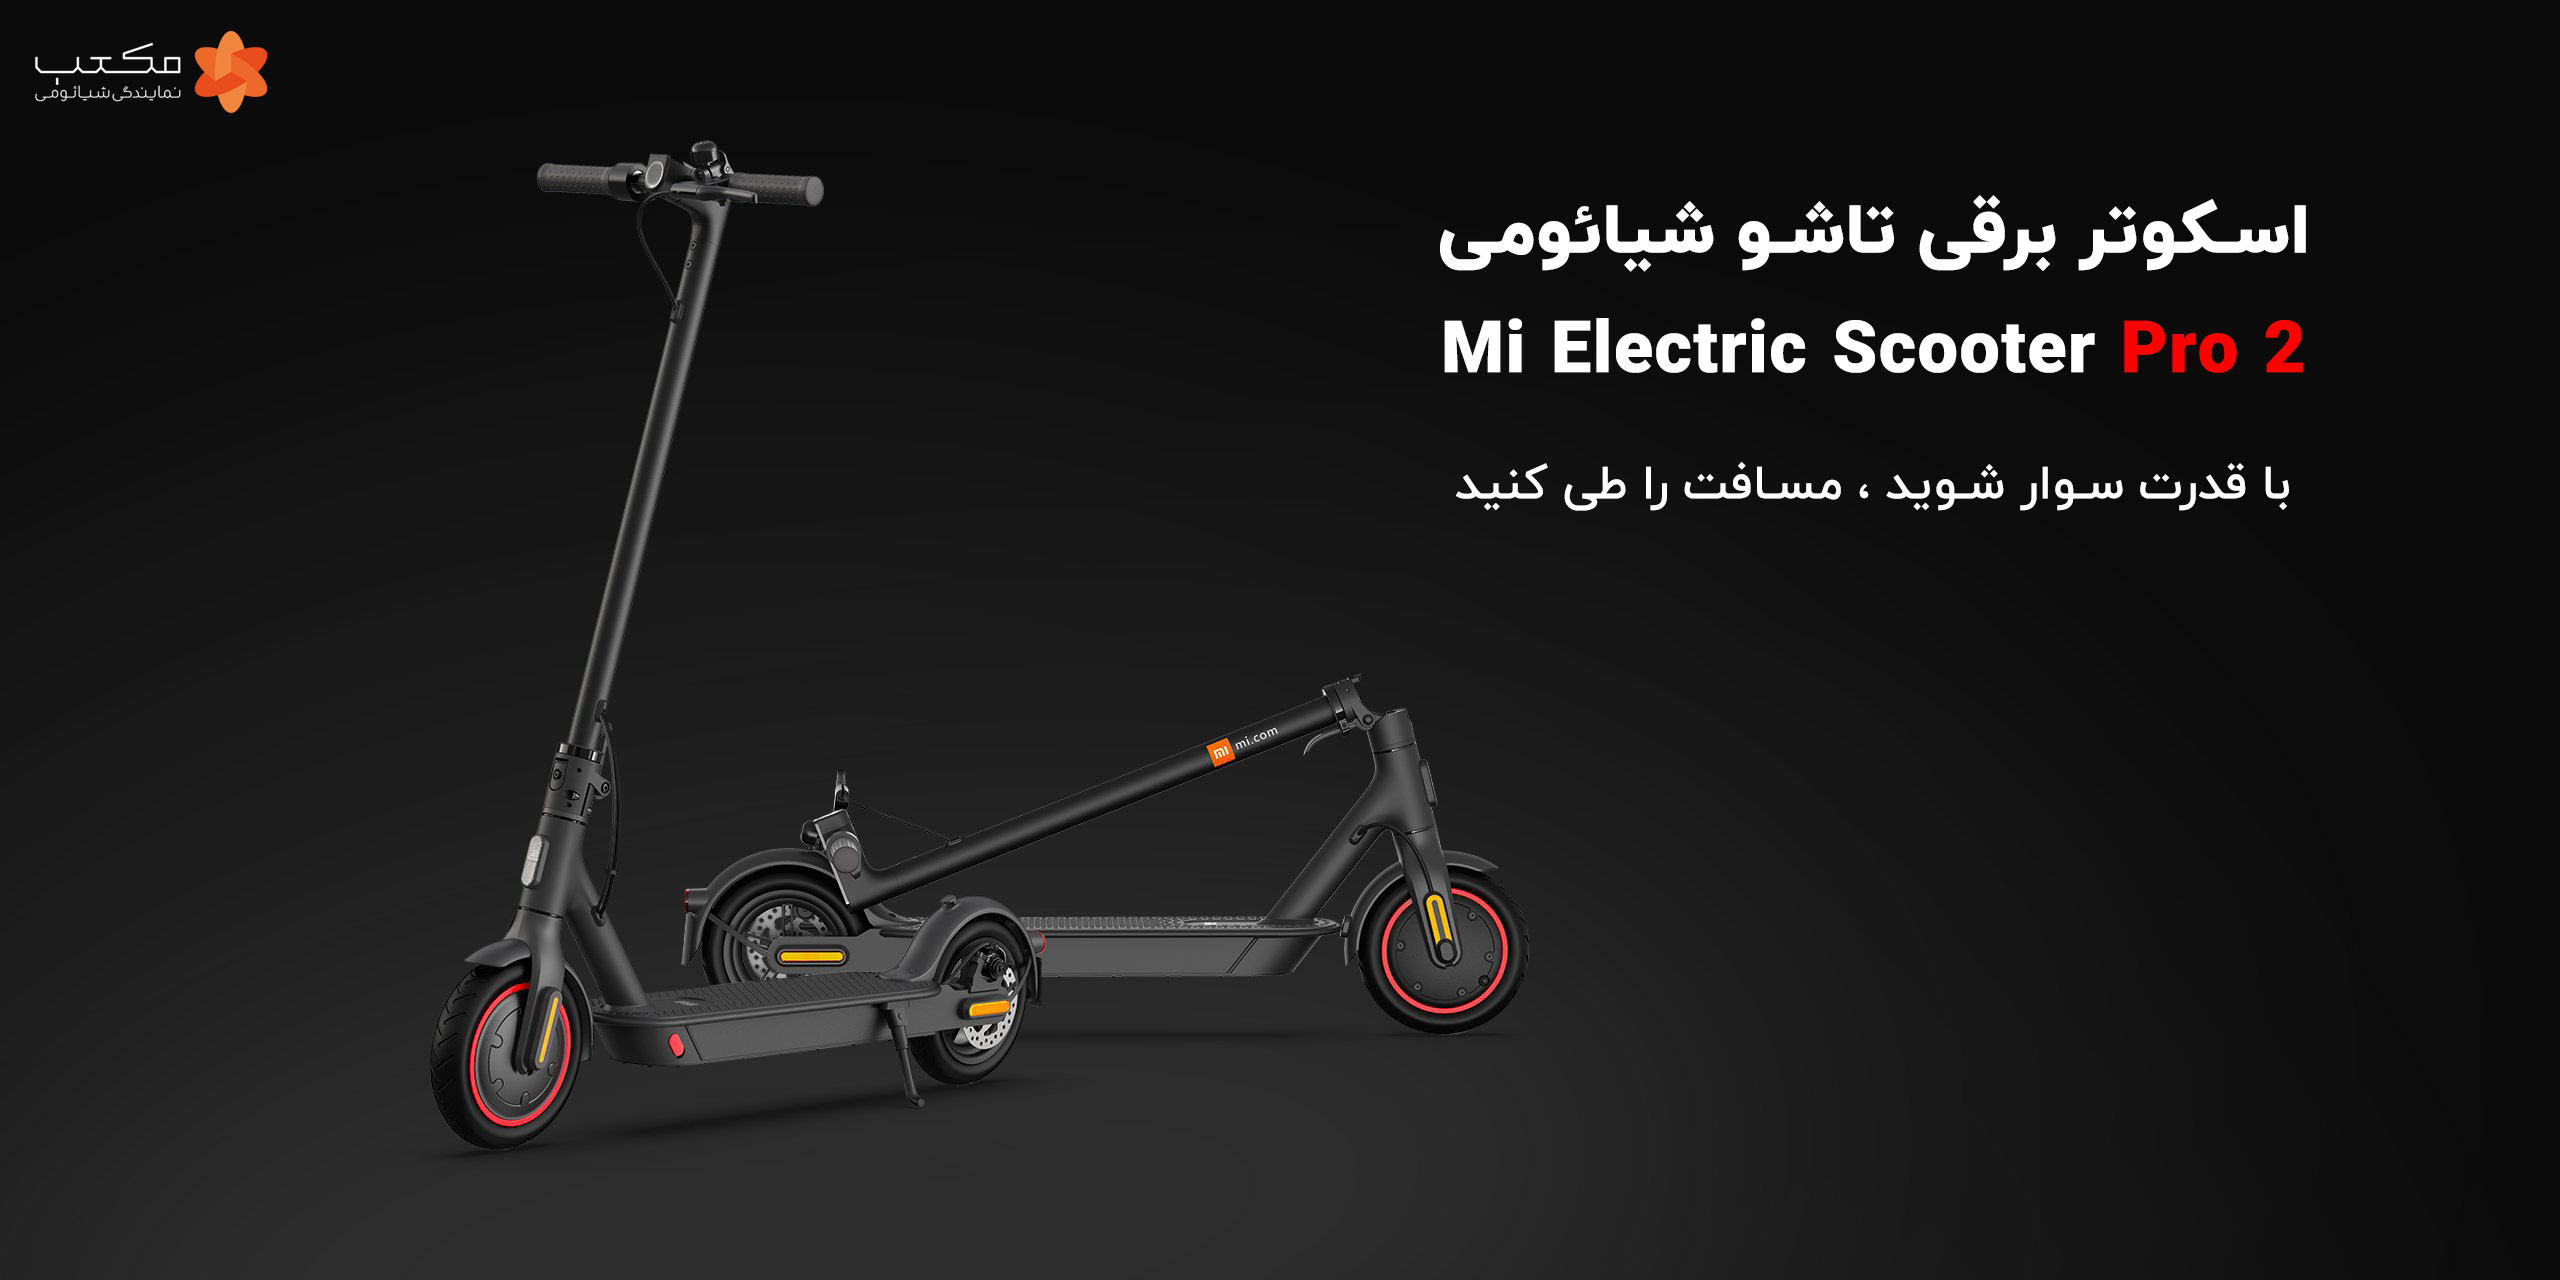 اسکوتر برقی تاشو شیائومی Mi Electric Scooter Pro 2